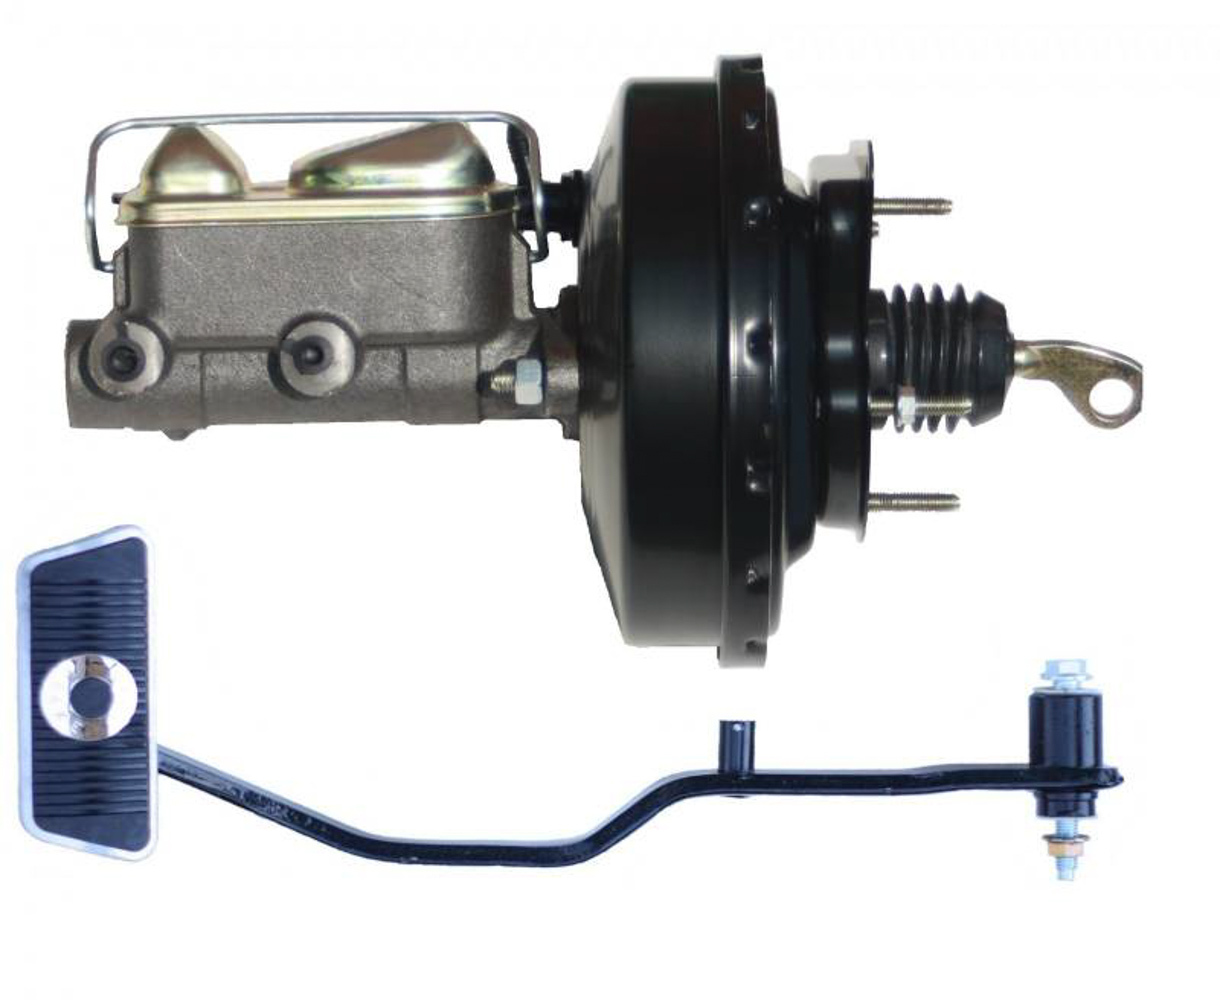 Leed Brakes 9in Power Brake Booster 1in Bore Master Cylinder